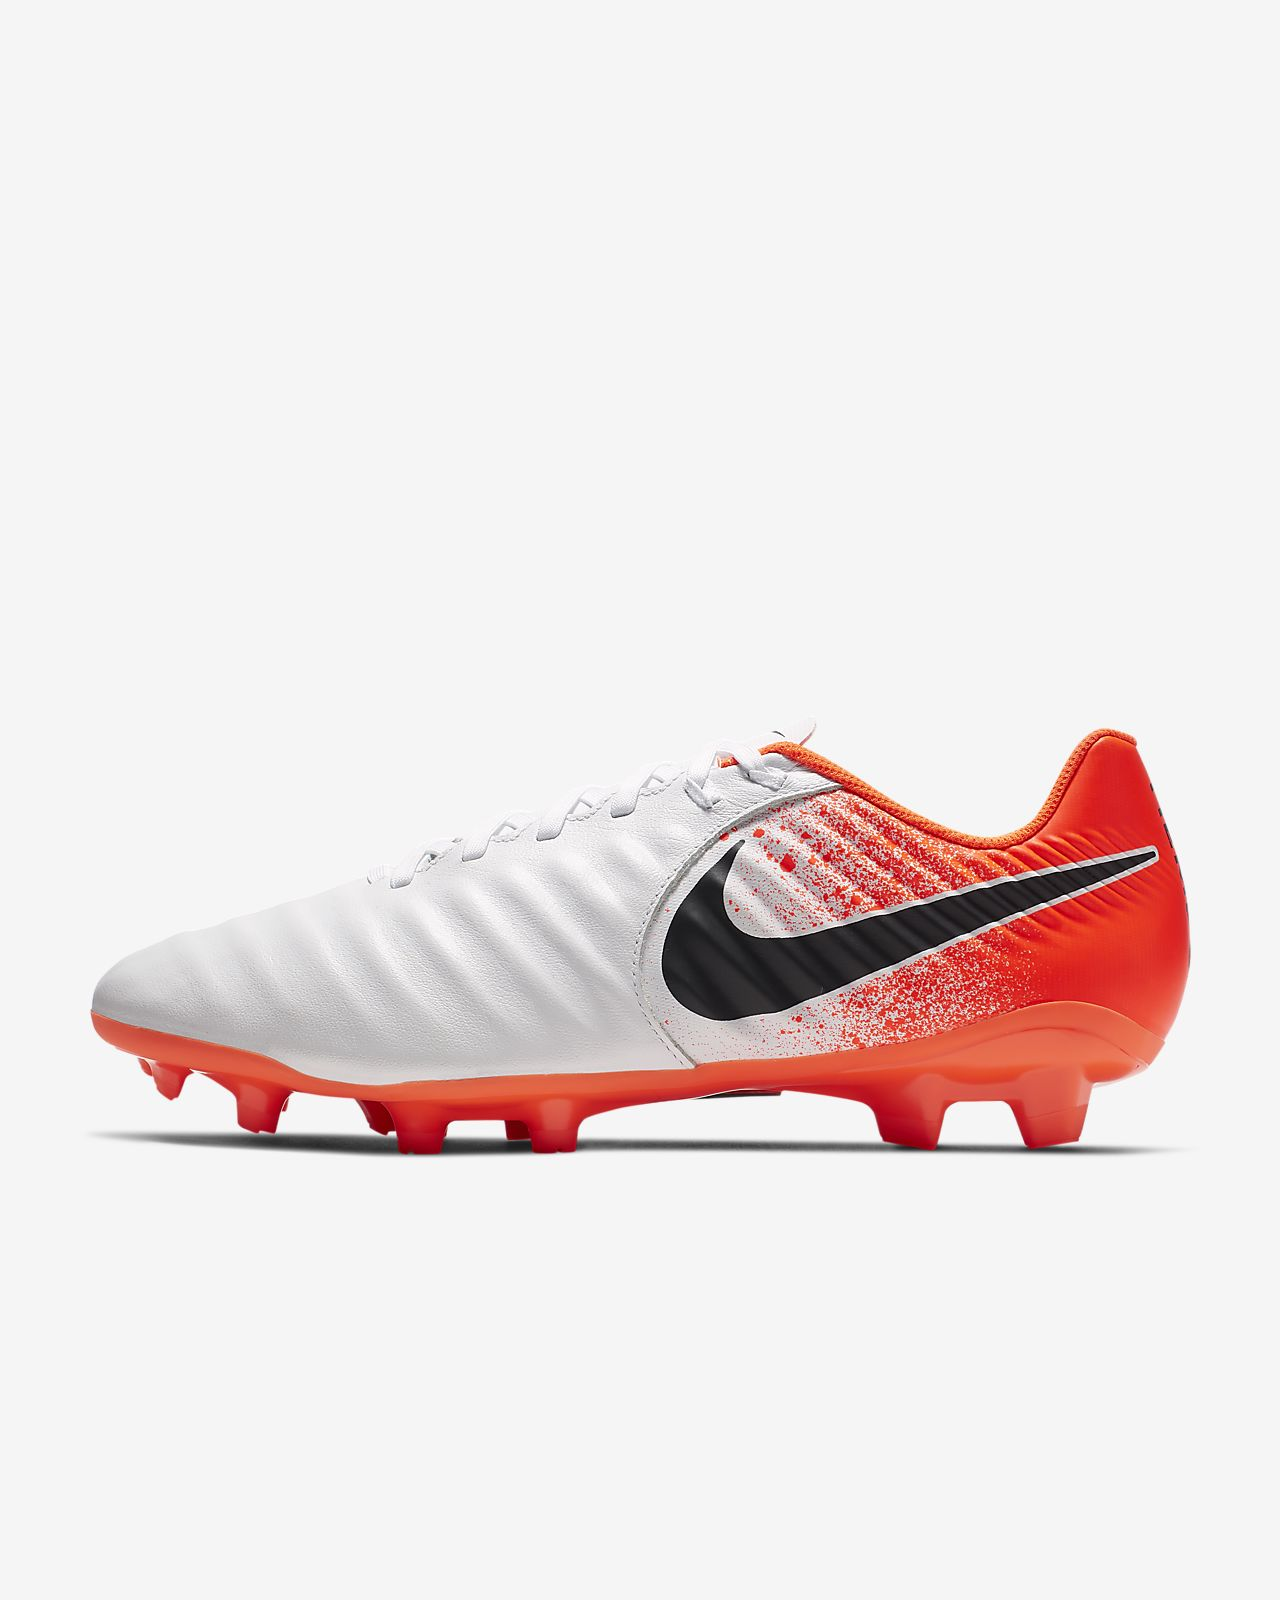 new arrival b6202 469df ... Nike Tiempo Legend VII Academy Firm-Ground Football Boot